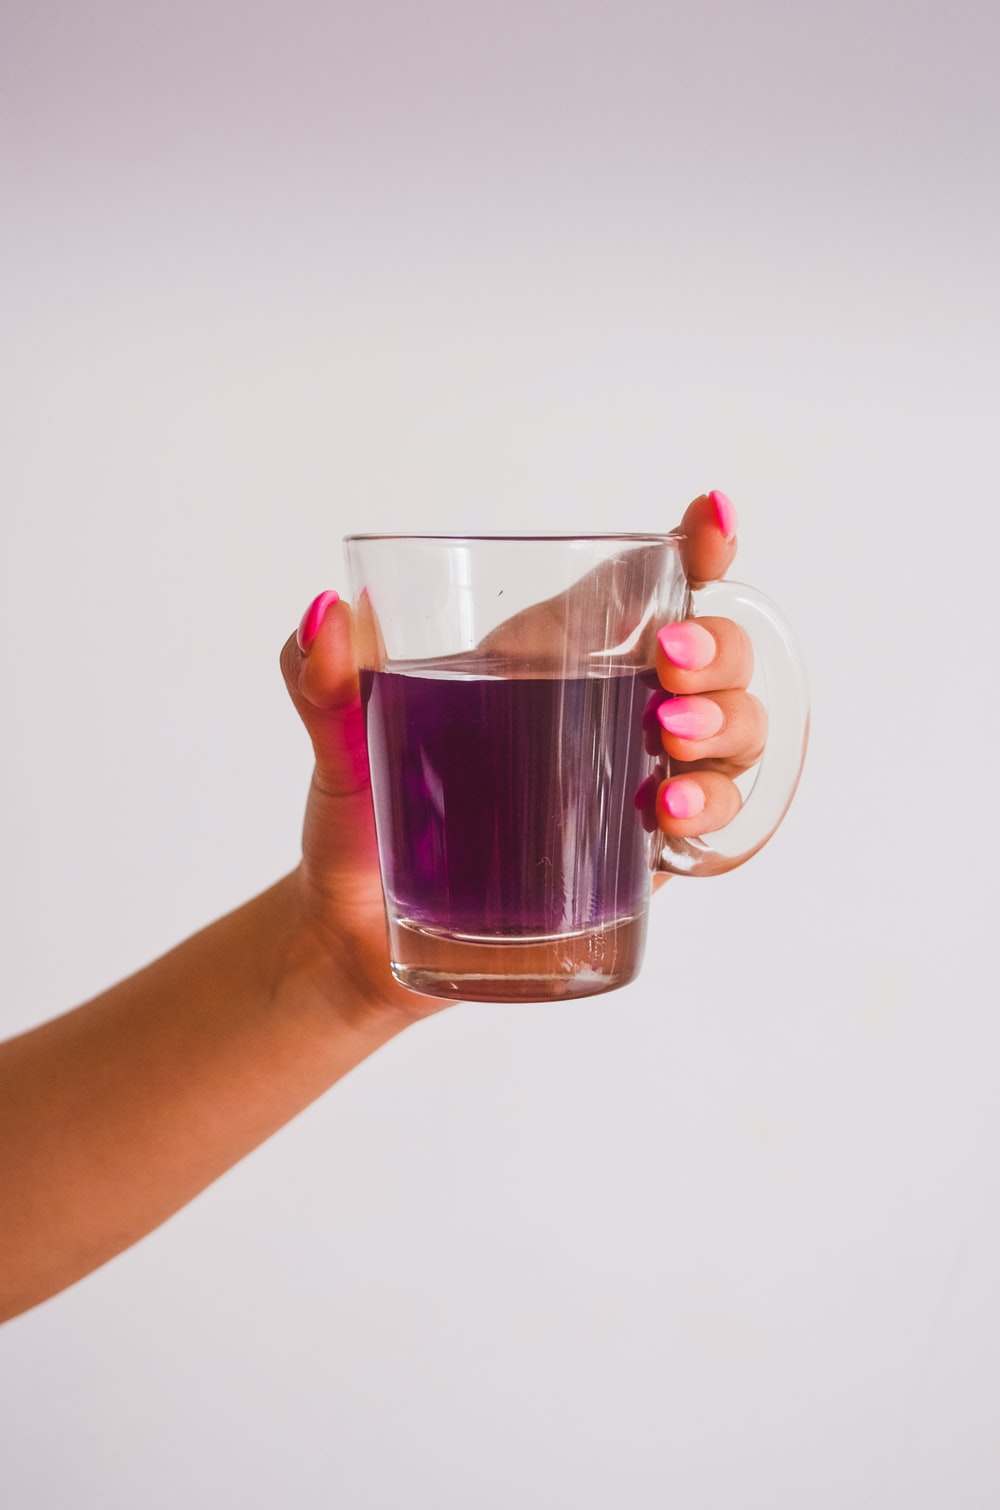 person holding clear glass mug with brown liquid